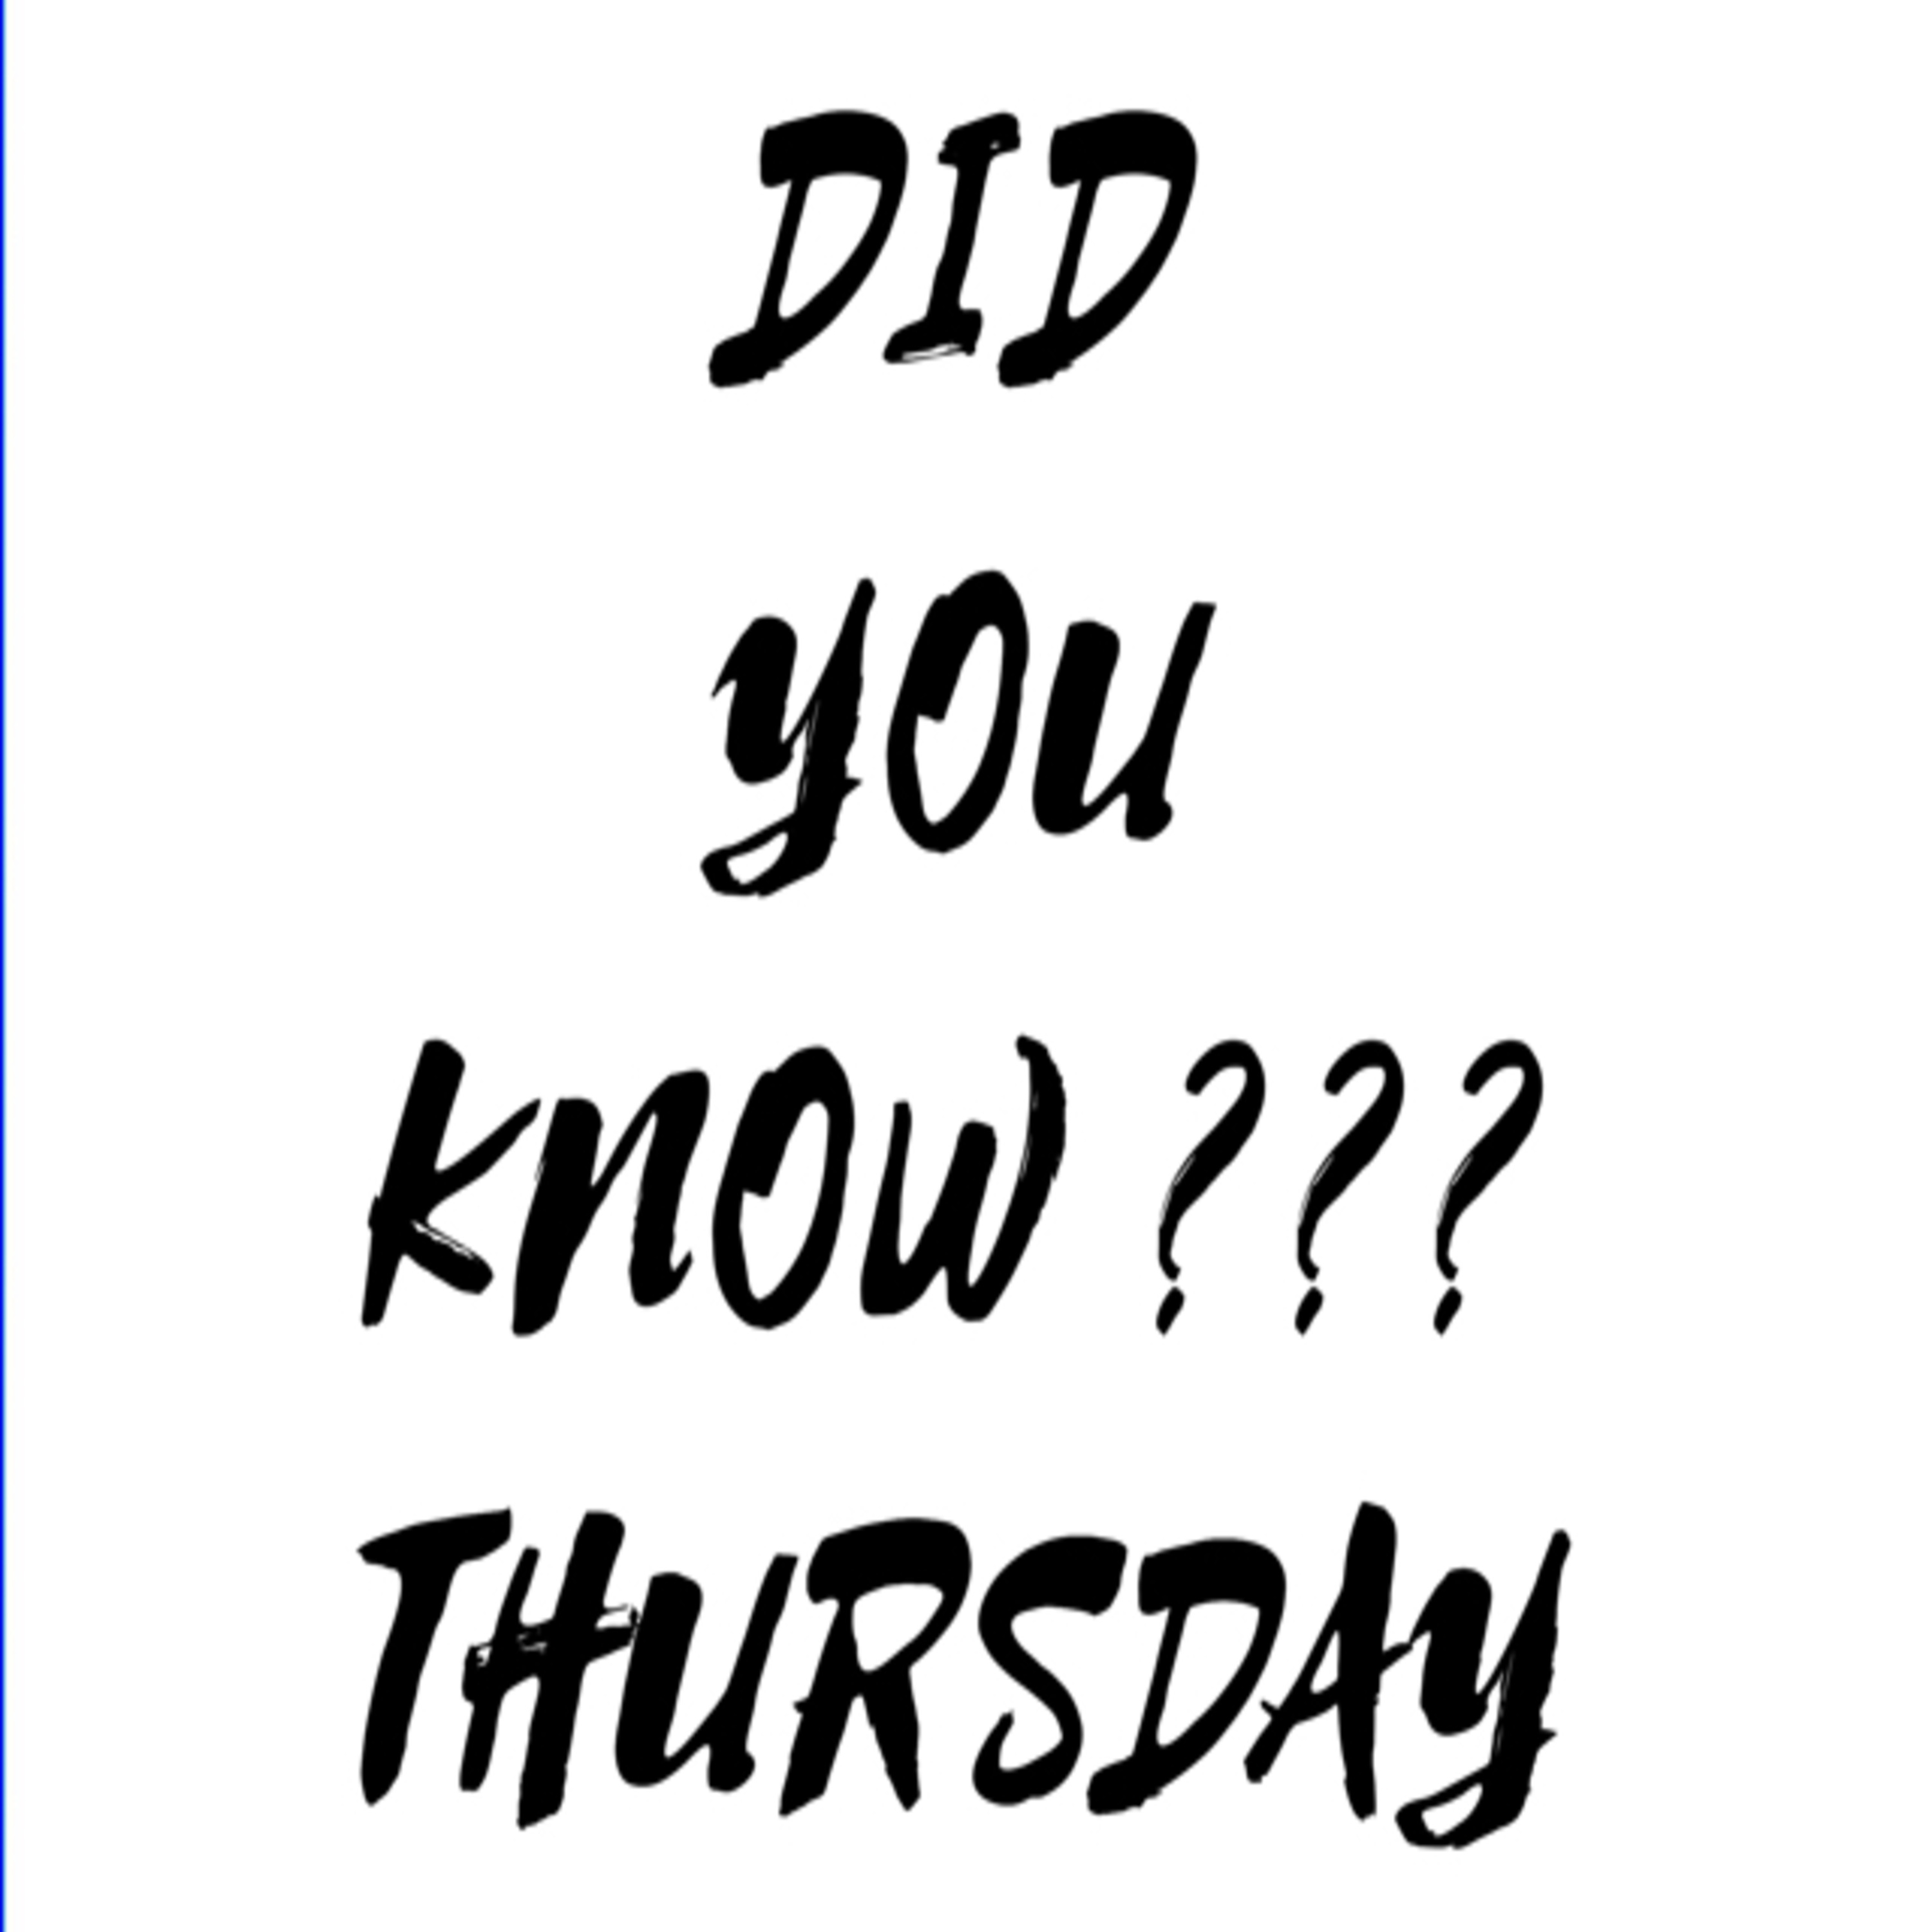 DID YOU KNOW? MOBILE PHONES - THURSDAY